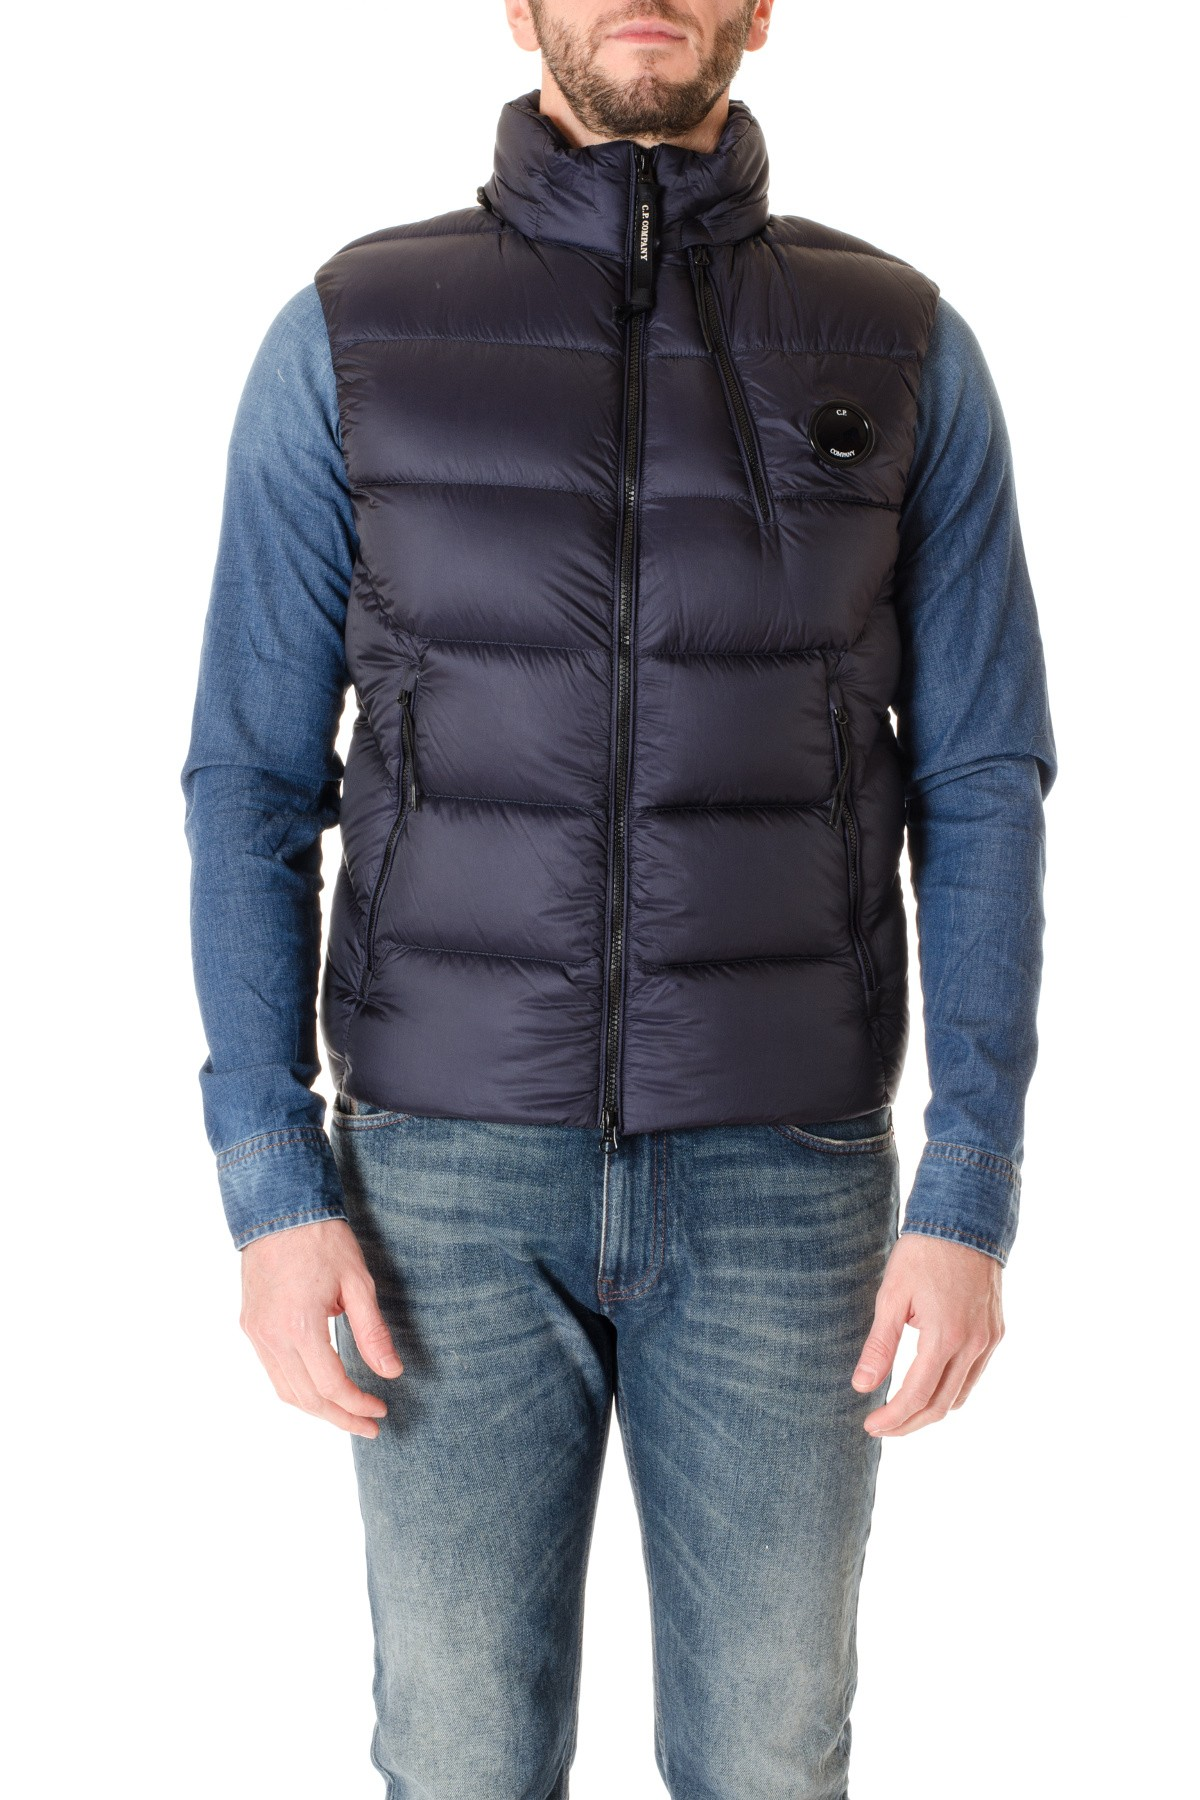 bf4e8bb41 C.P. COMPANY Blue padded jacket without sleeves F/W 16-17 - Rione ...